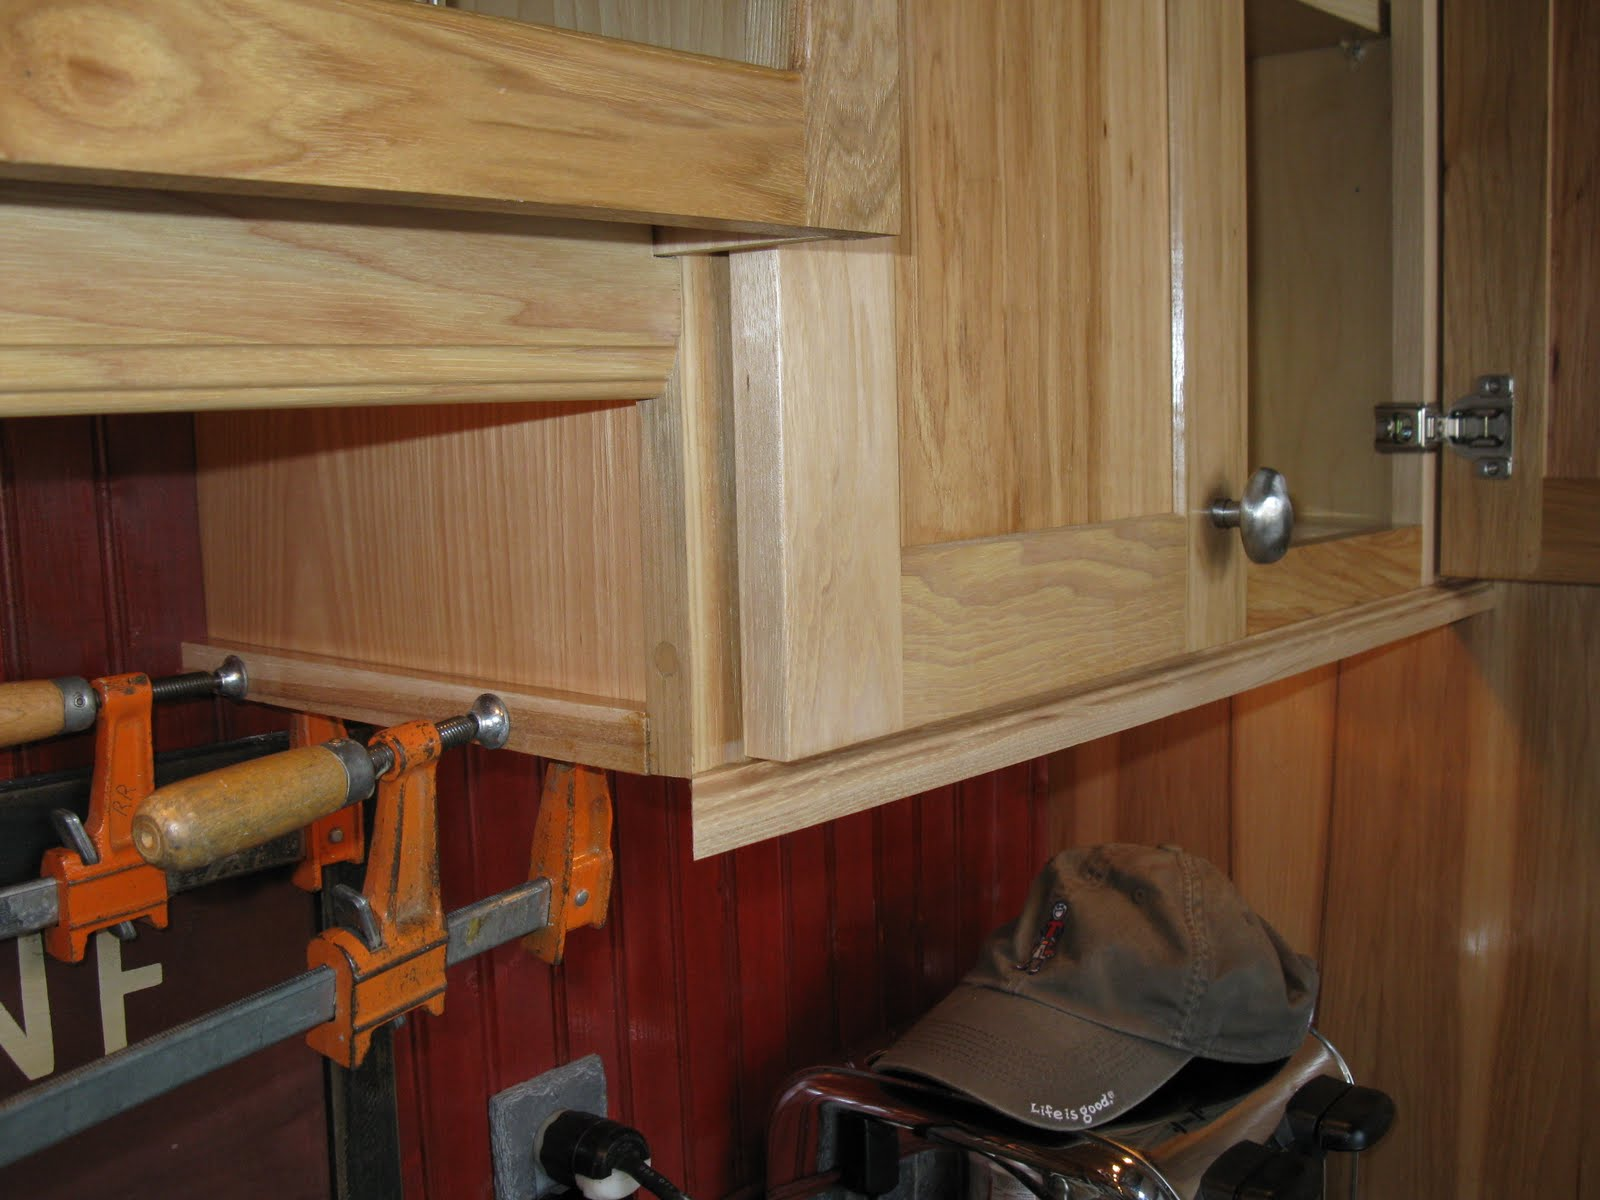 Under cabinet light rail molding -  Light Rail Molding Clamping Miters Can Be Tough I Wanted To Avoid Nailing This Miter Since It S Very Visible And At Eye Level Kitchen Cabinets And